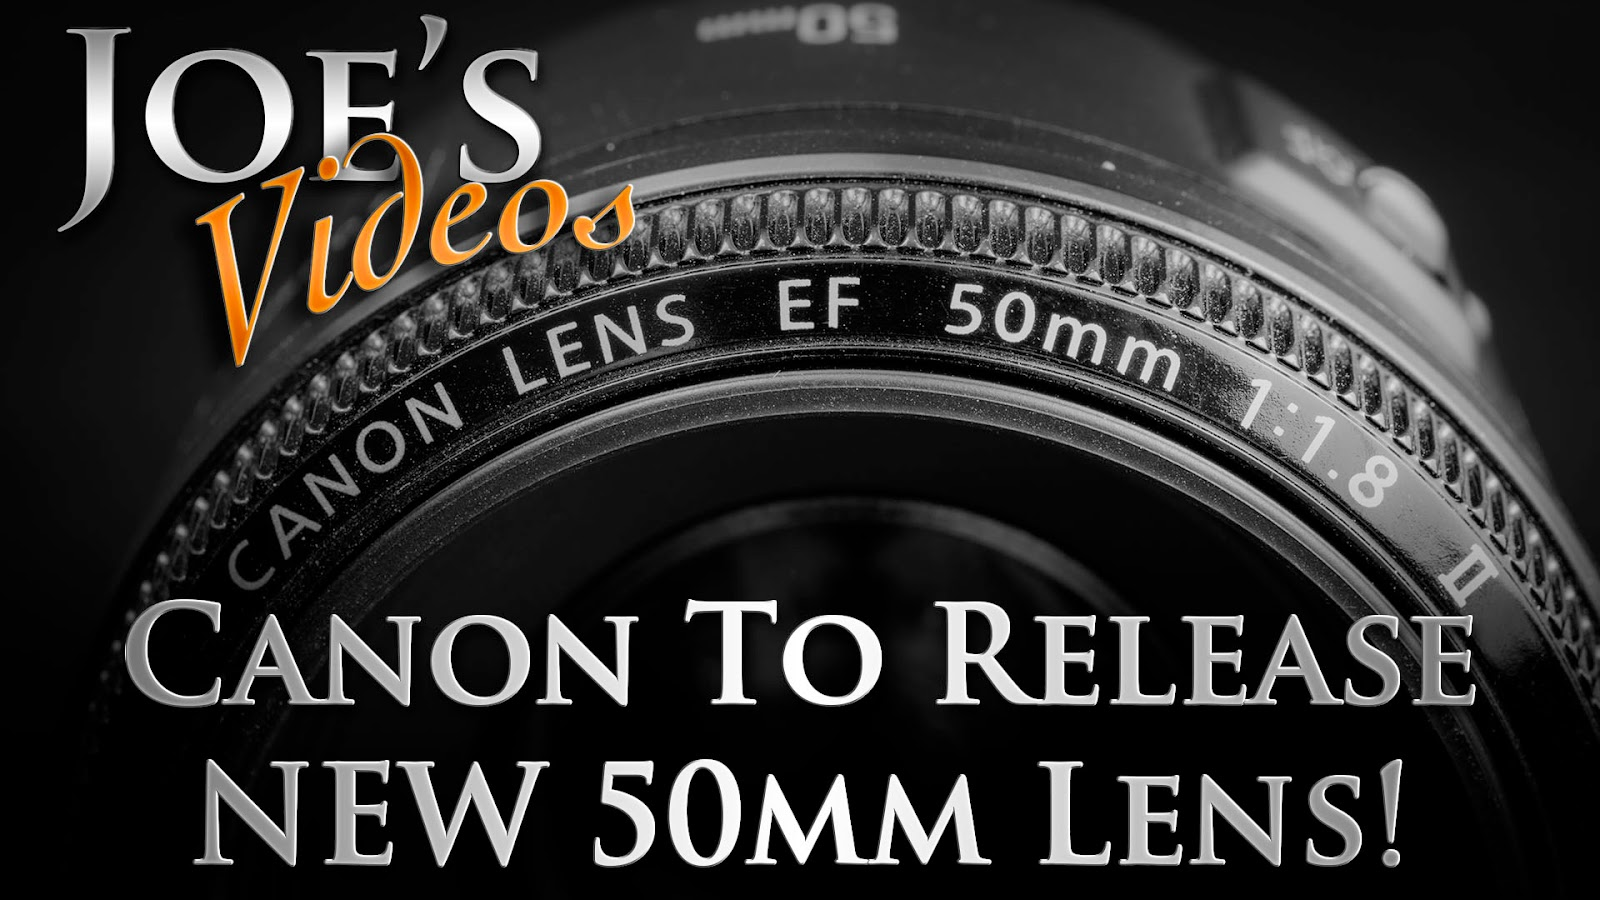 Canon To Release NEW 50mm Lens, Rumors & Speculation | Joe's Videos